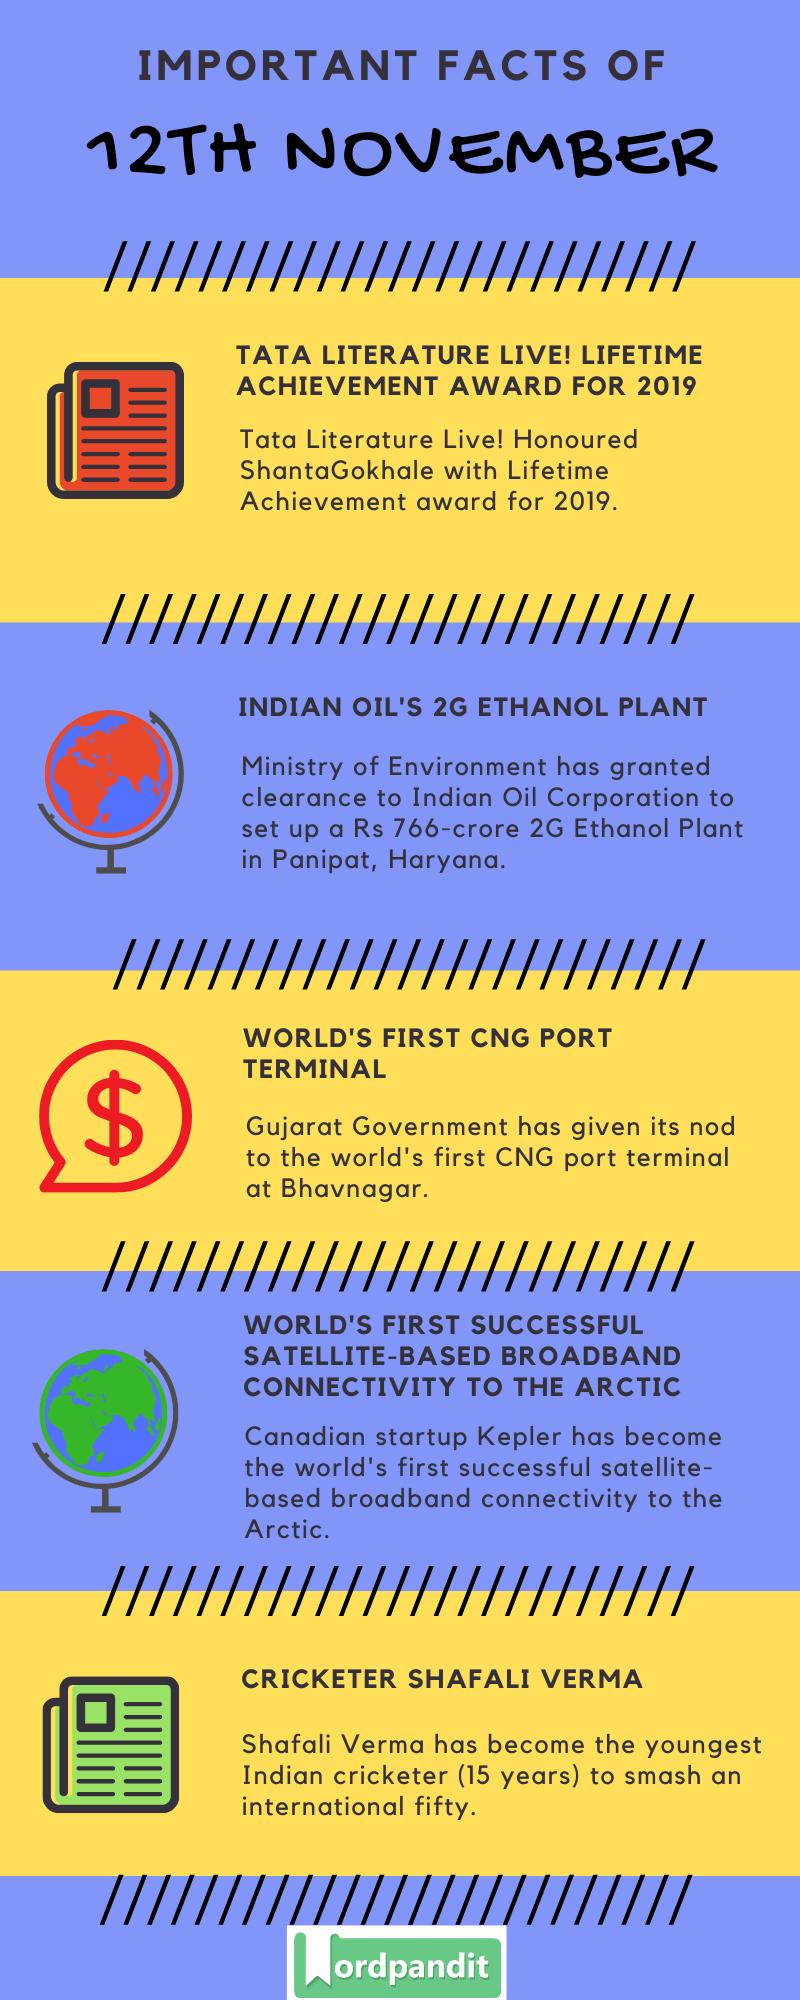 Daily Current Affairs 12 November 2019 Current Affairs Quiz 12 November 2019 Current Affairs Infographic